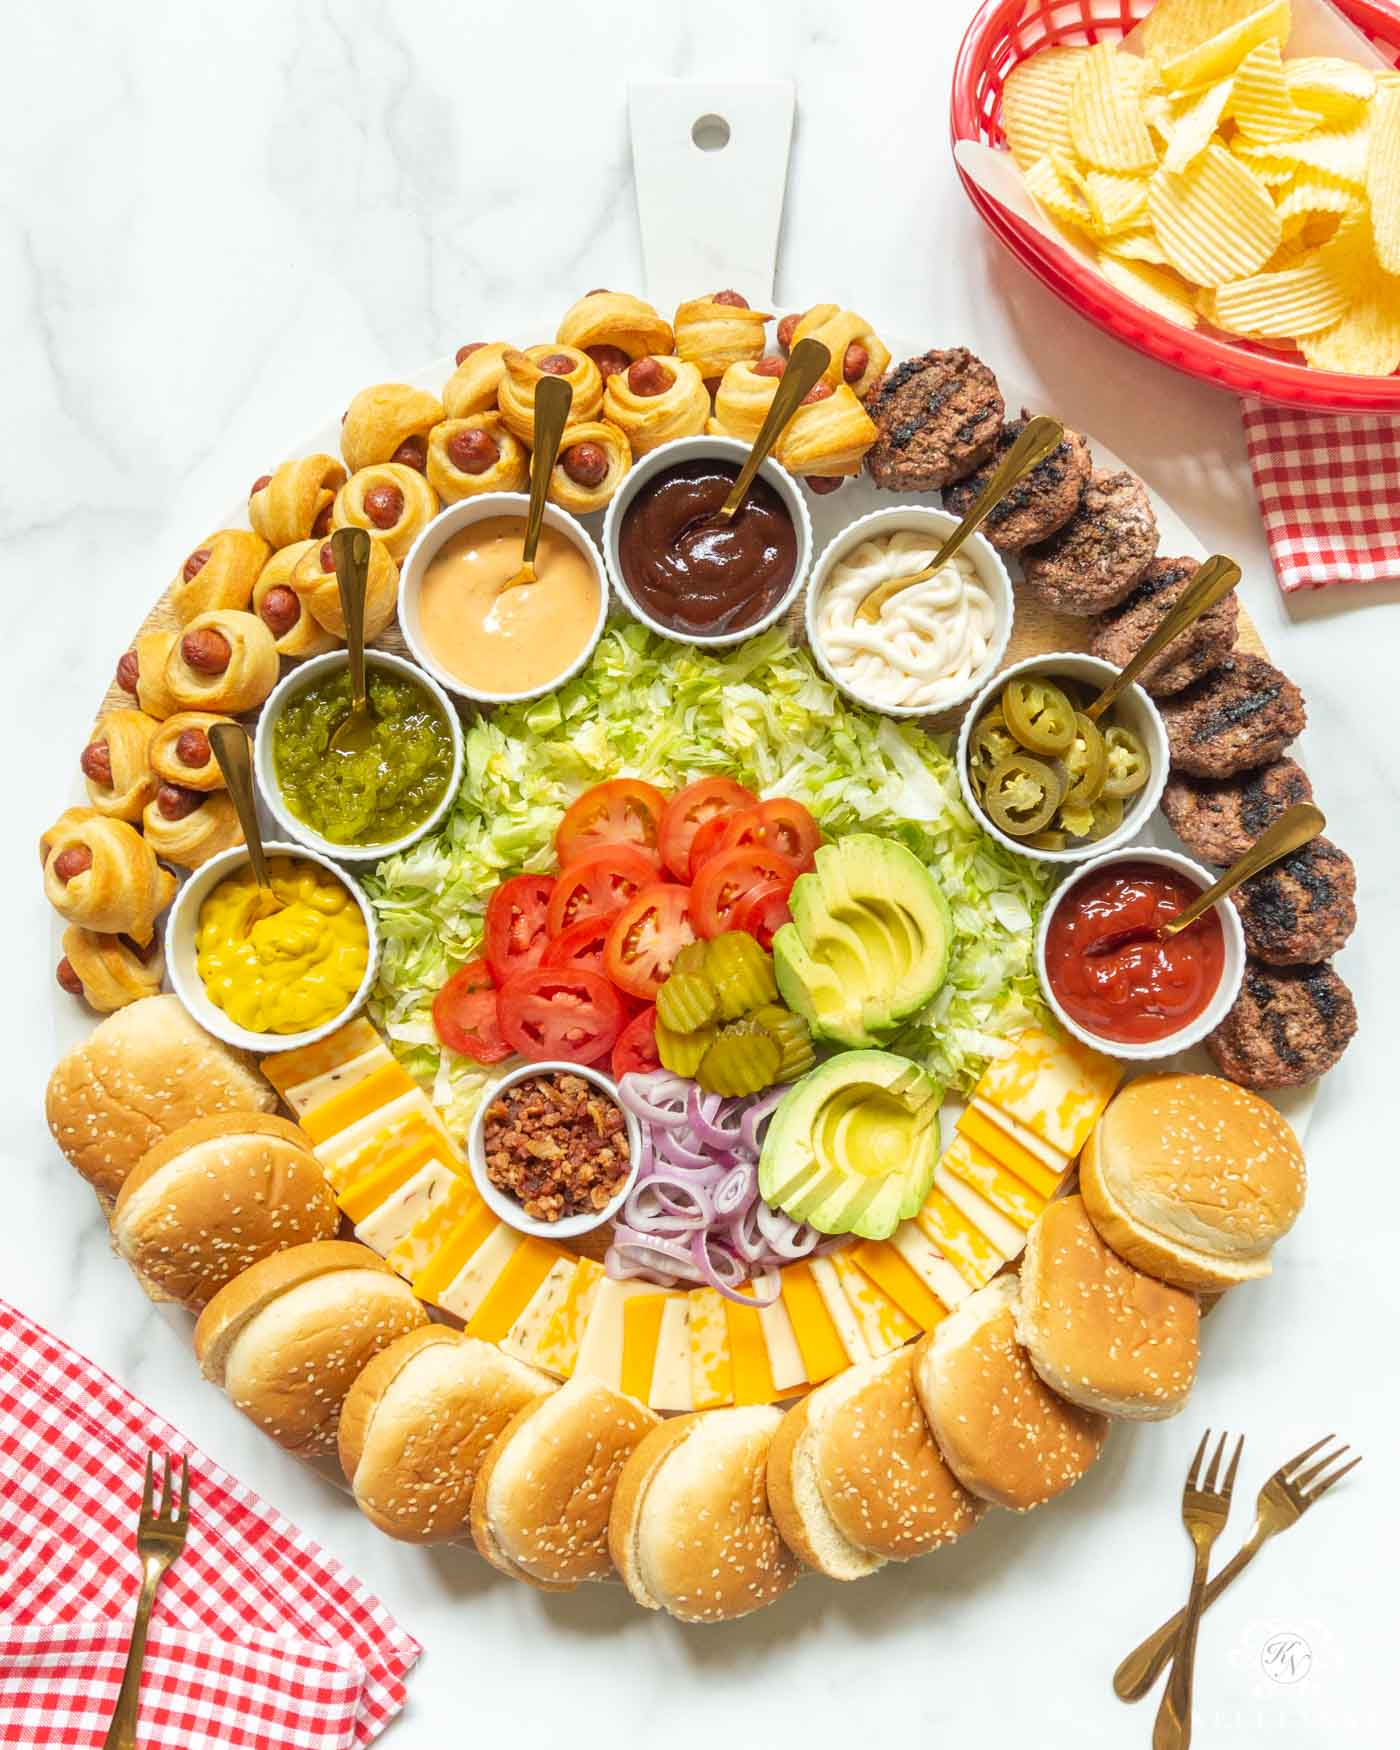 Build Your Own (Slider) Burger Bar! The Perfect Charcuterie Board for a Summer Cookout